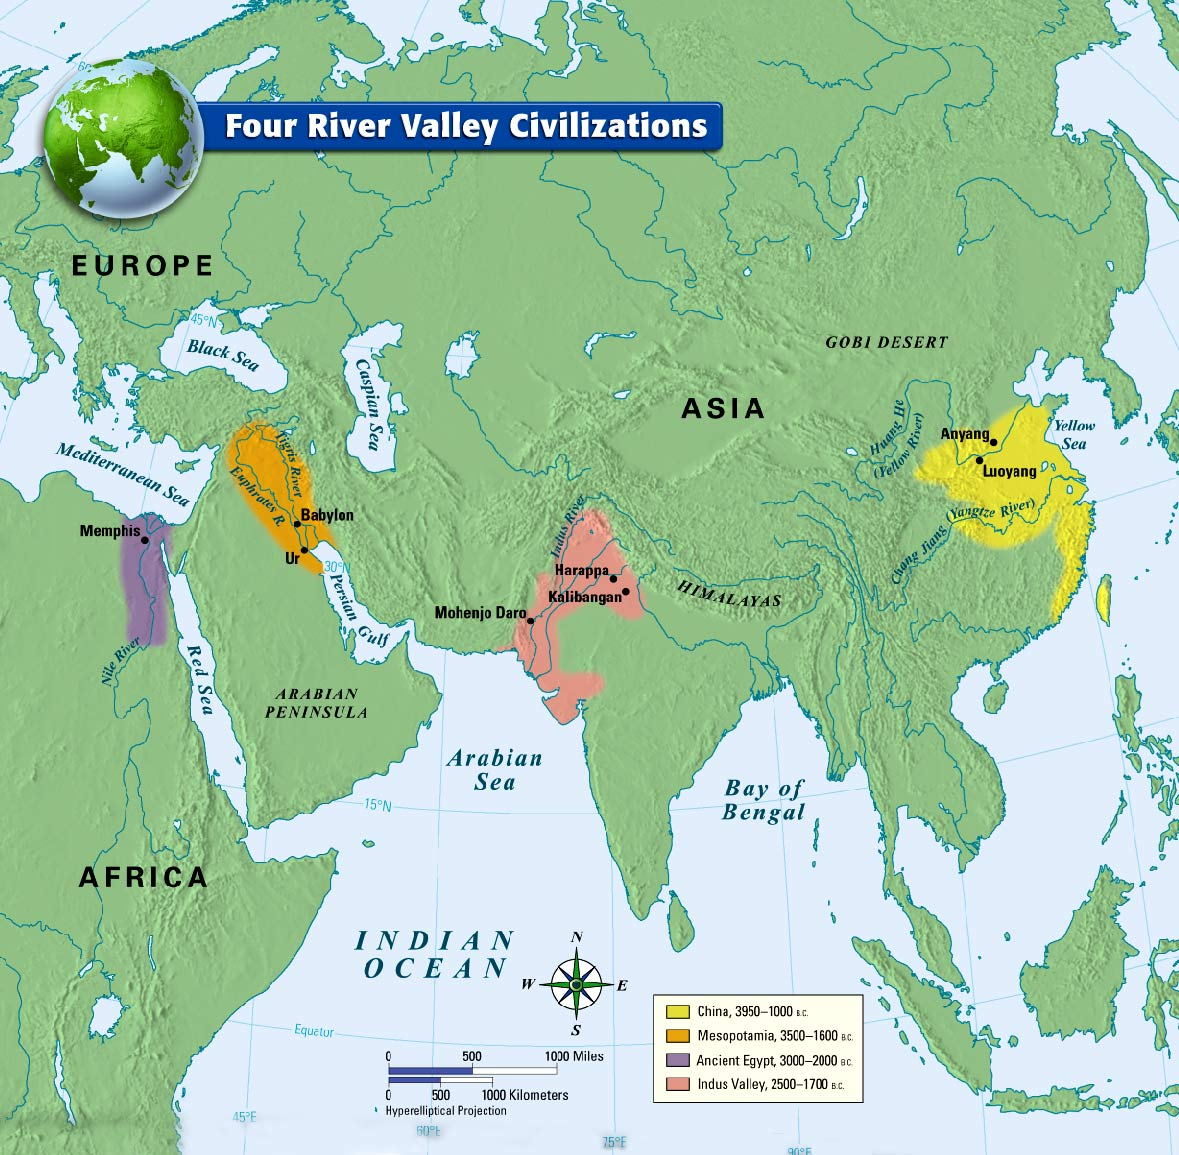 Four River Valley Civilizations Map